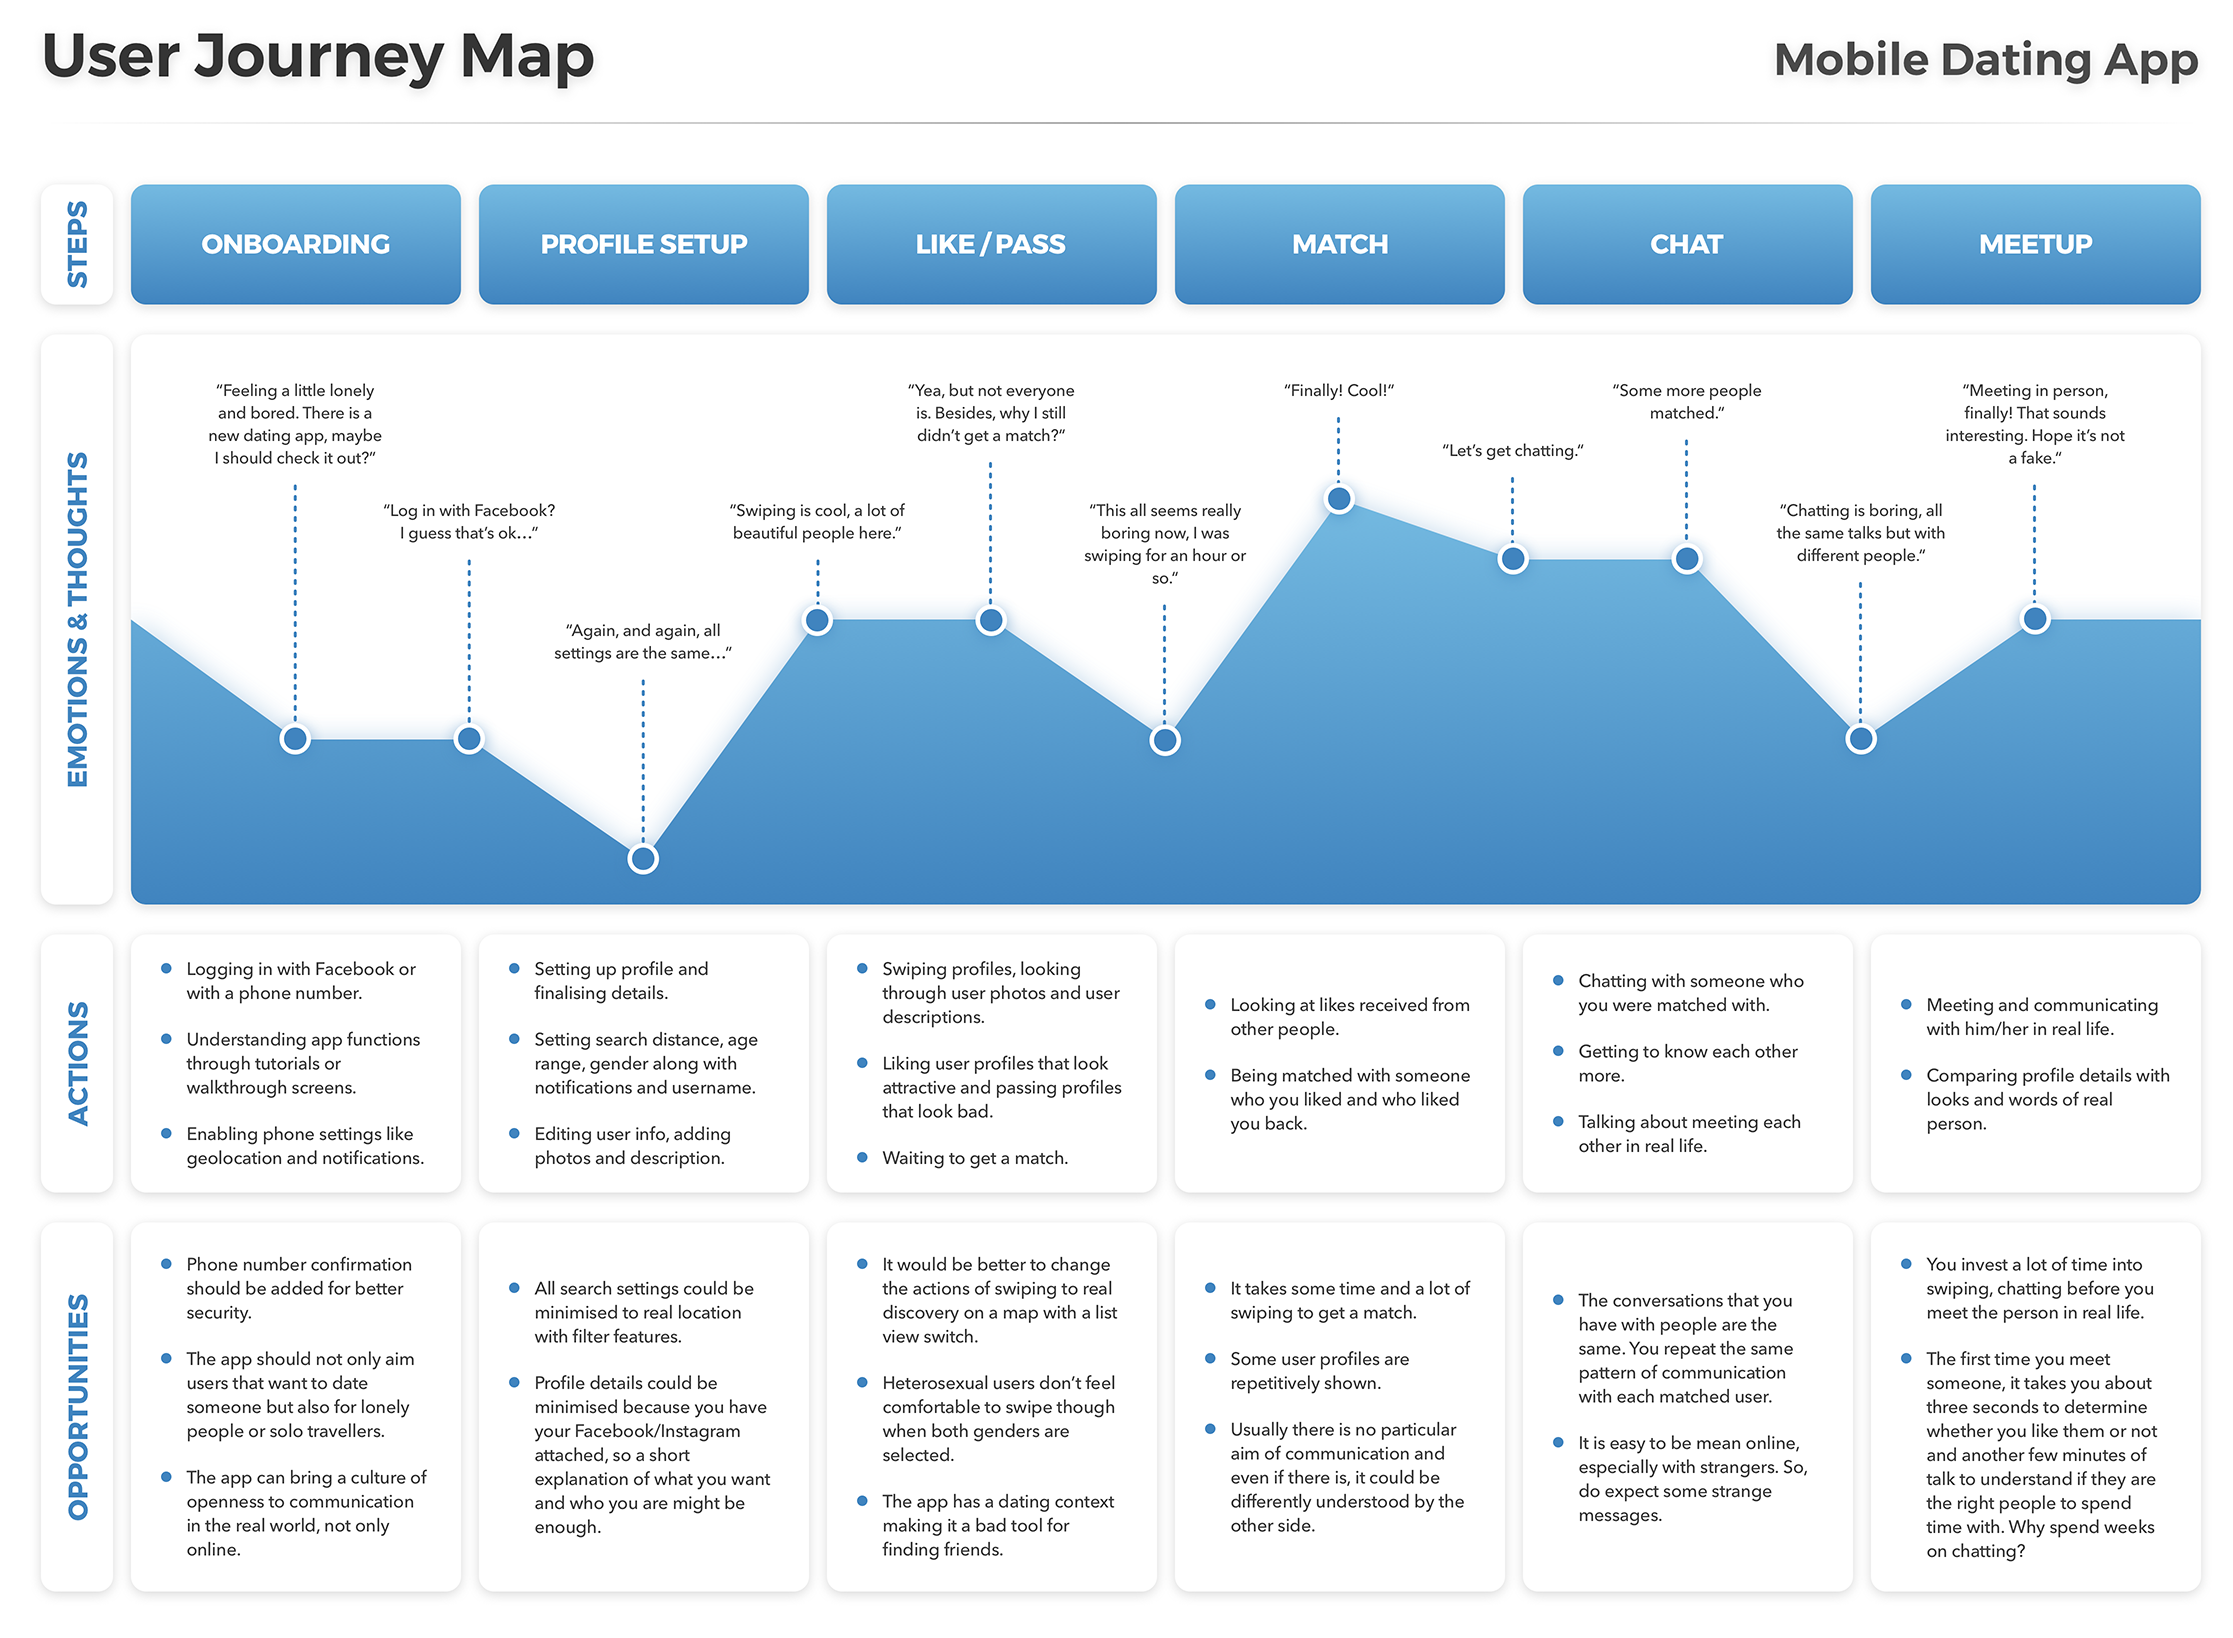 Hey User Journey Map